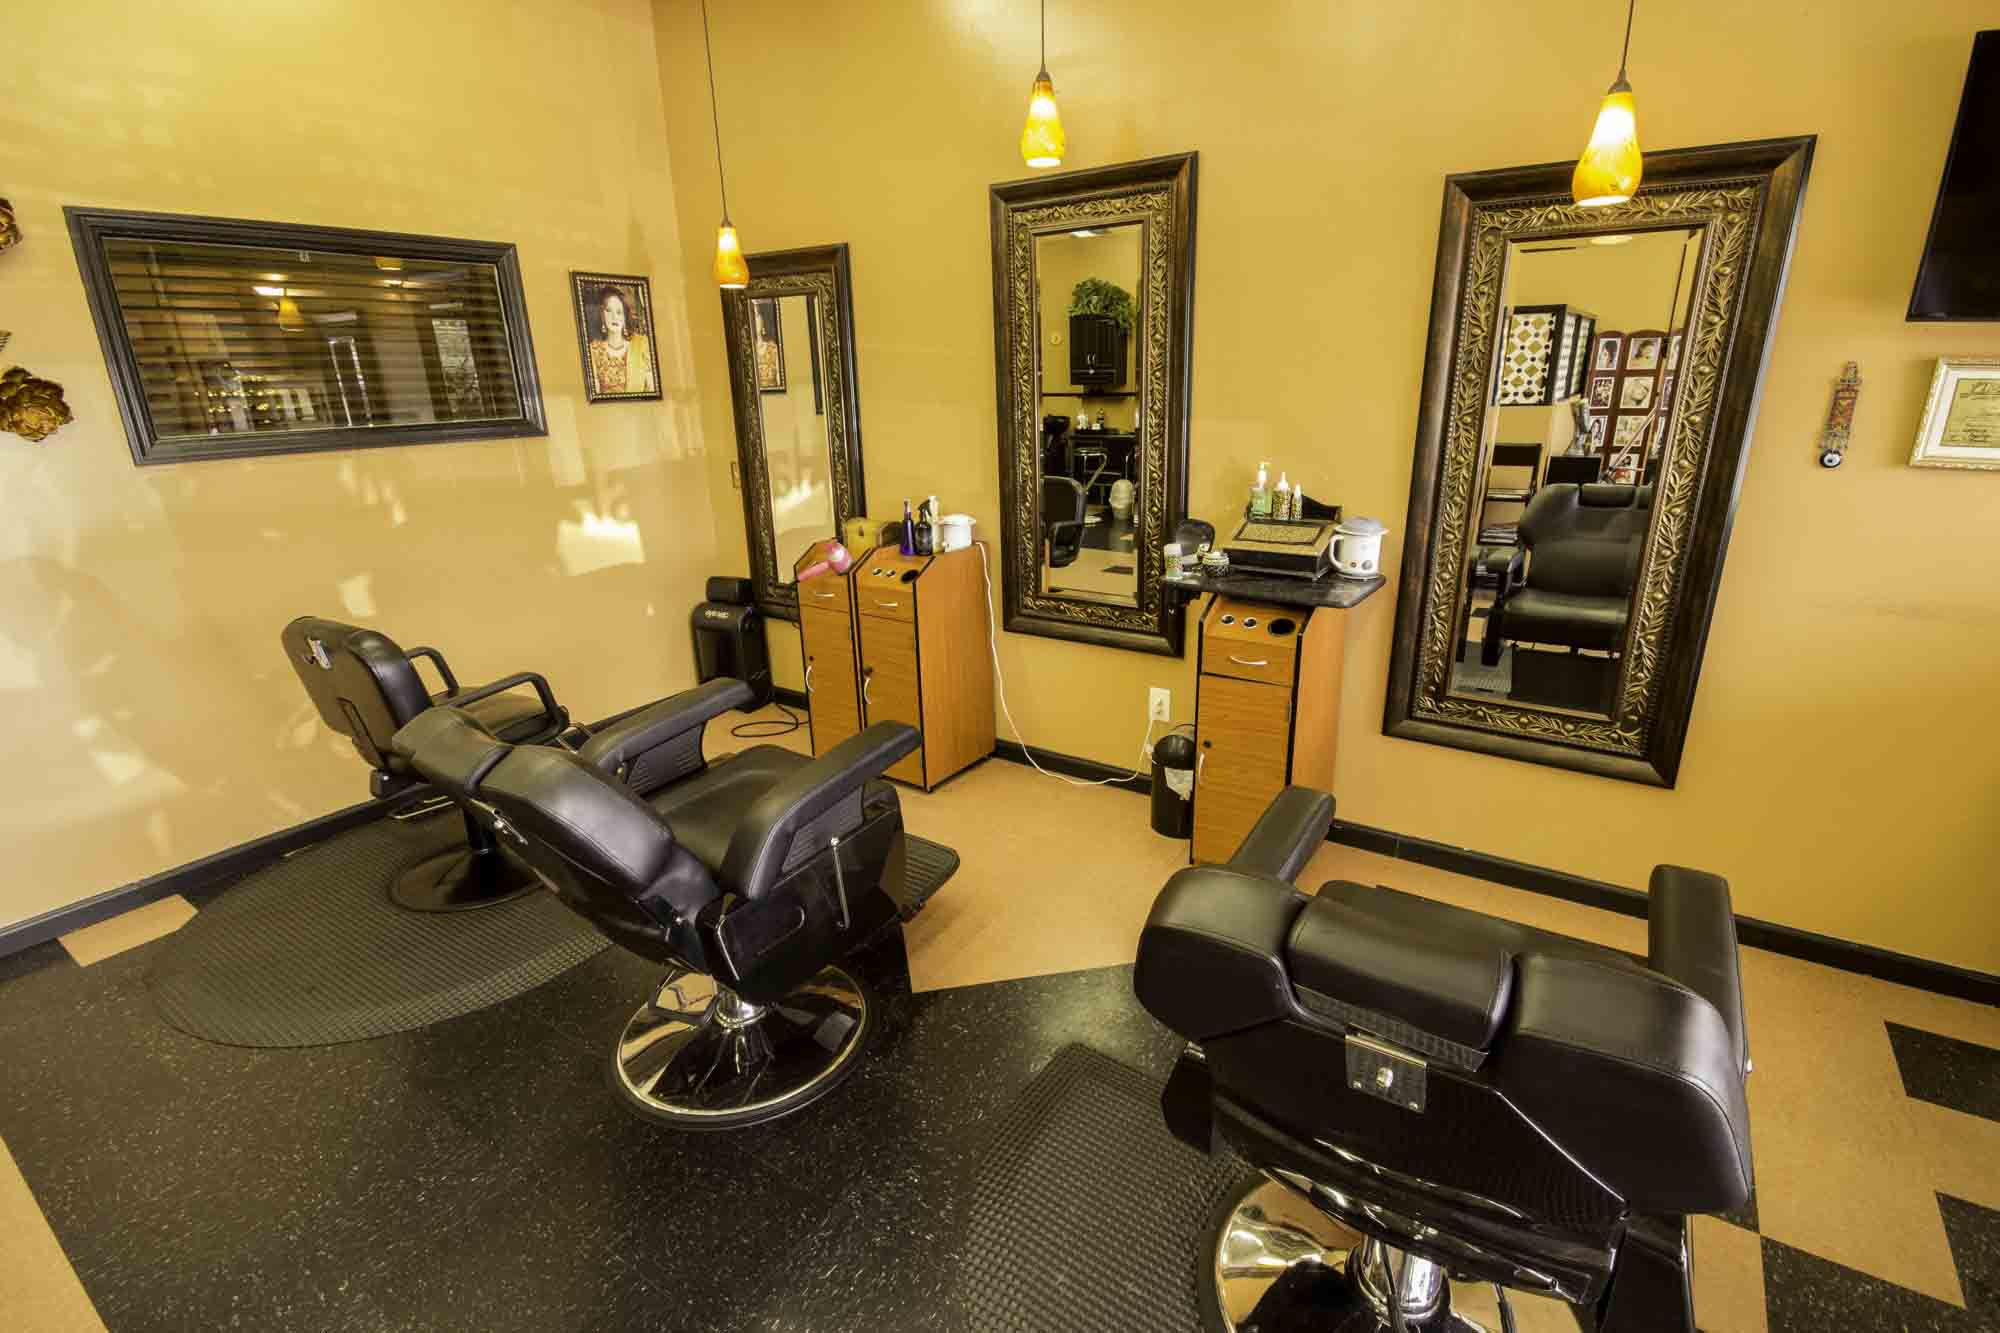 Cary beauty spa salon interior 1 shamim beauty parlour for Hair salon interior design photo